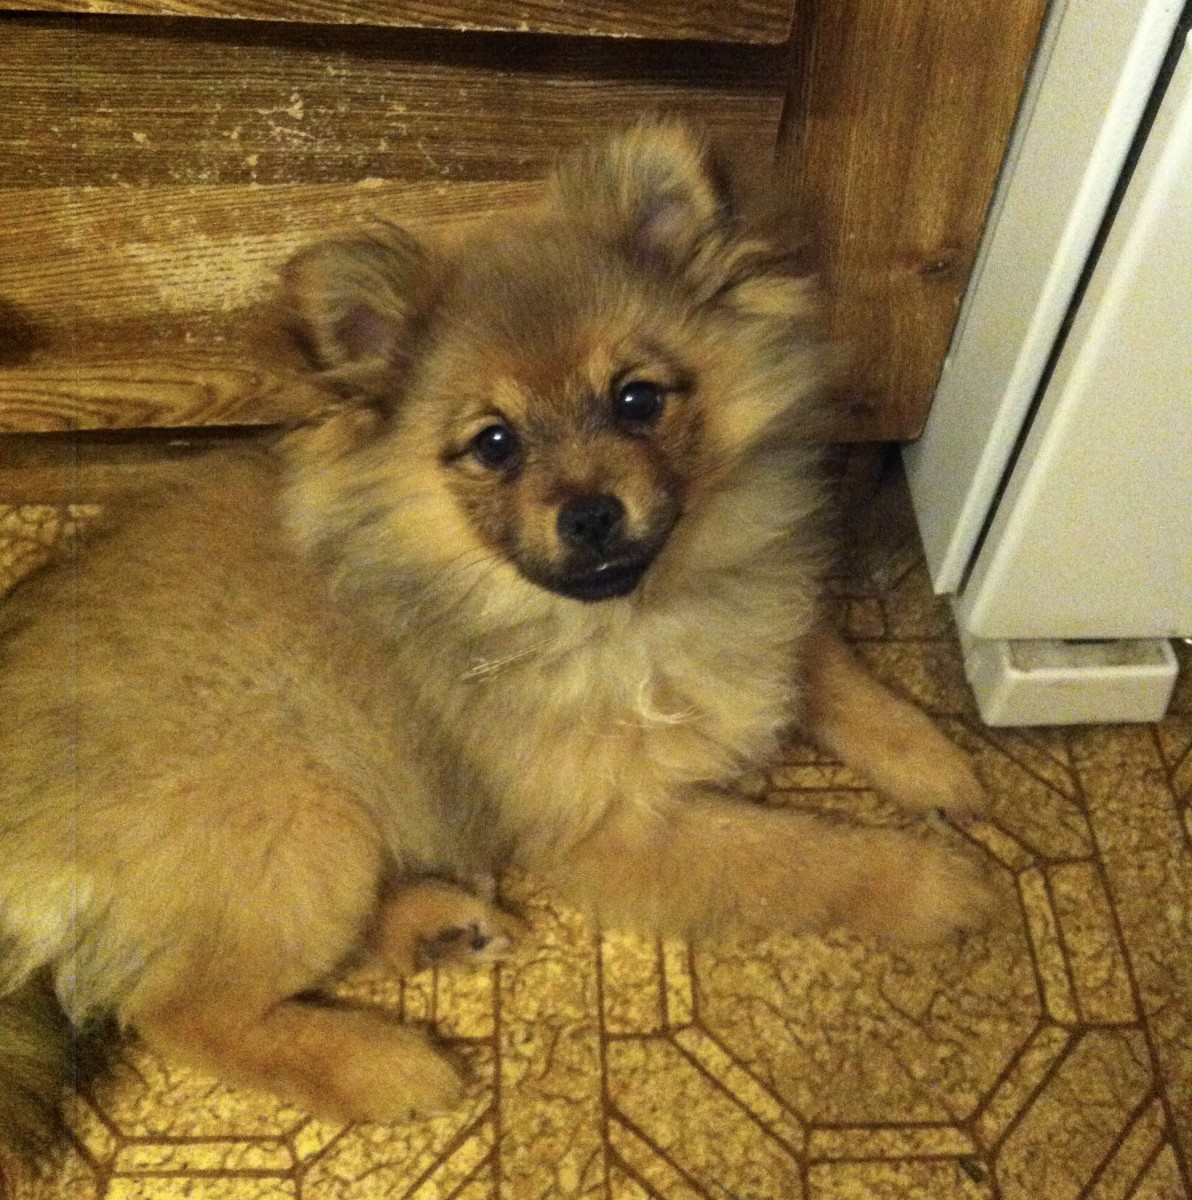 A How to Guide for Caring for a Pomeranian